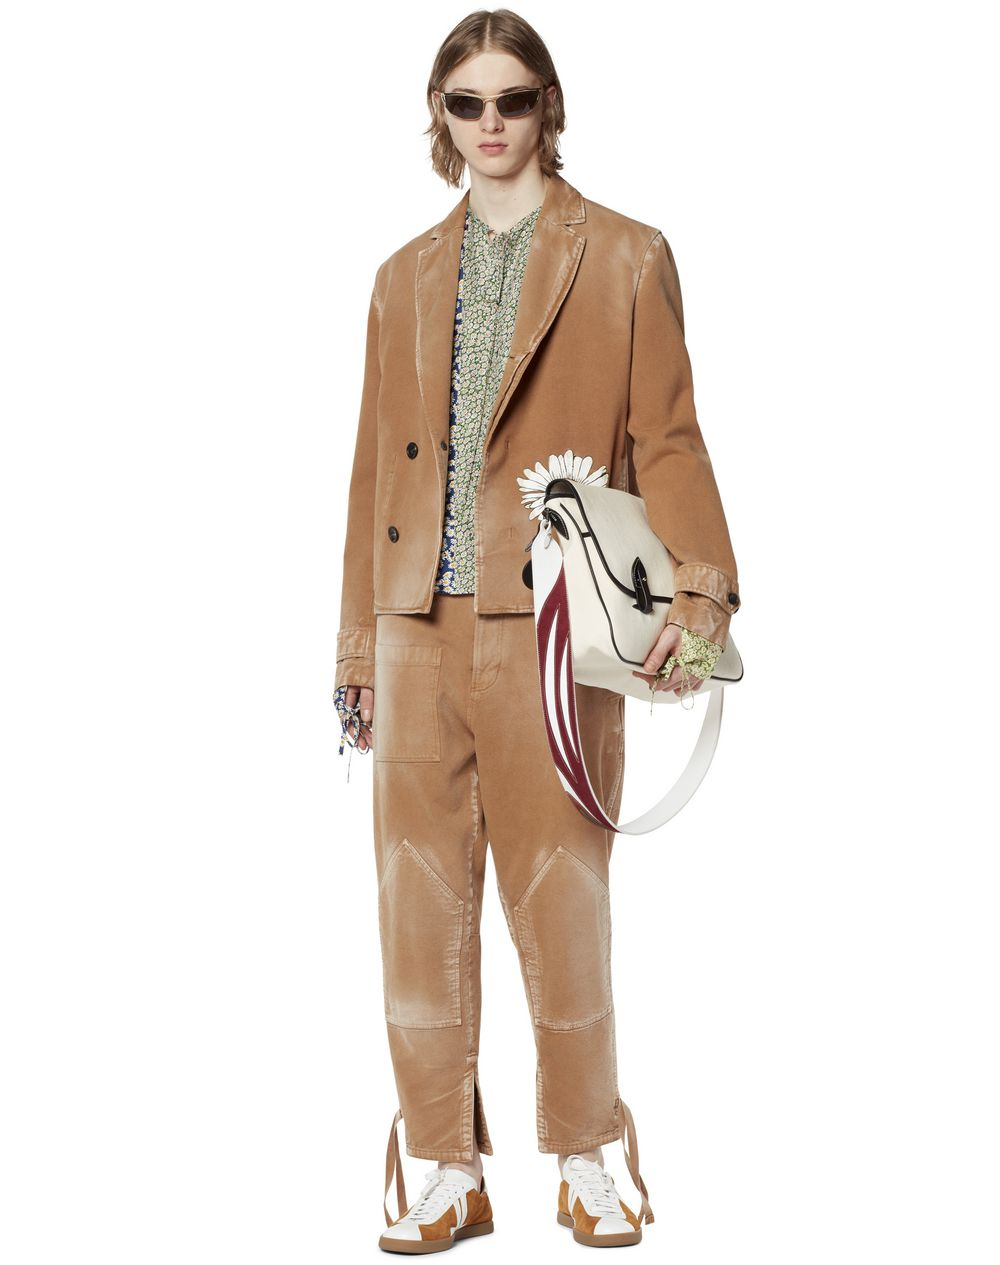 GIACCA STAMPATA IN CANVAS - Lanvin